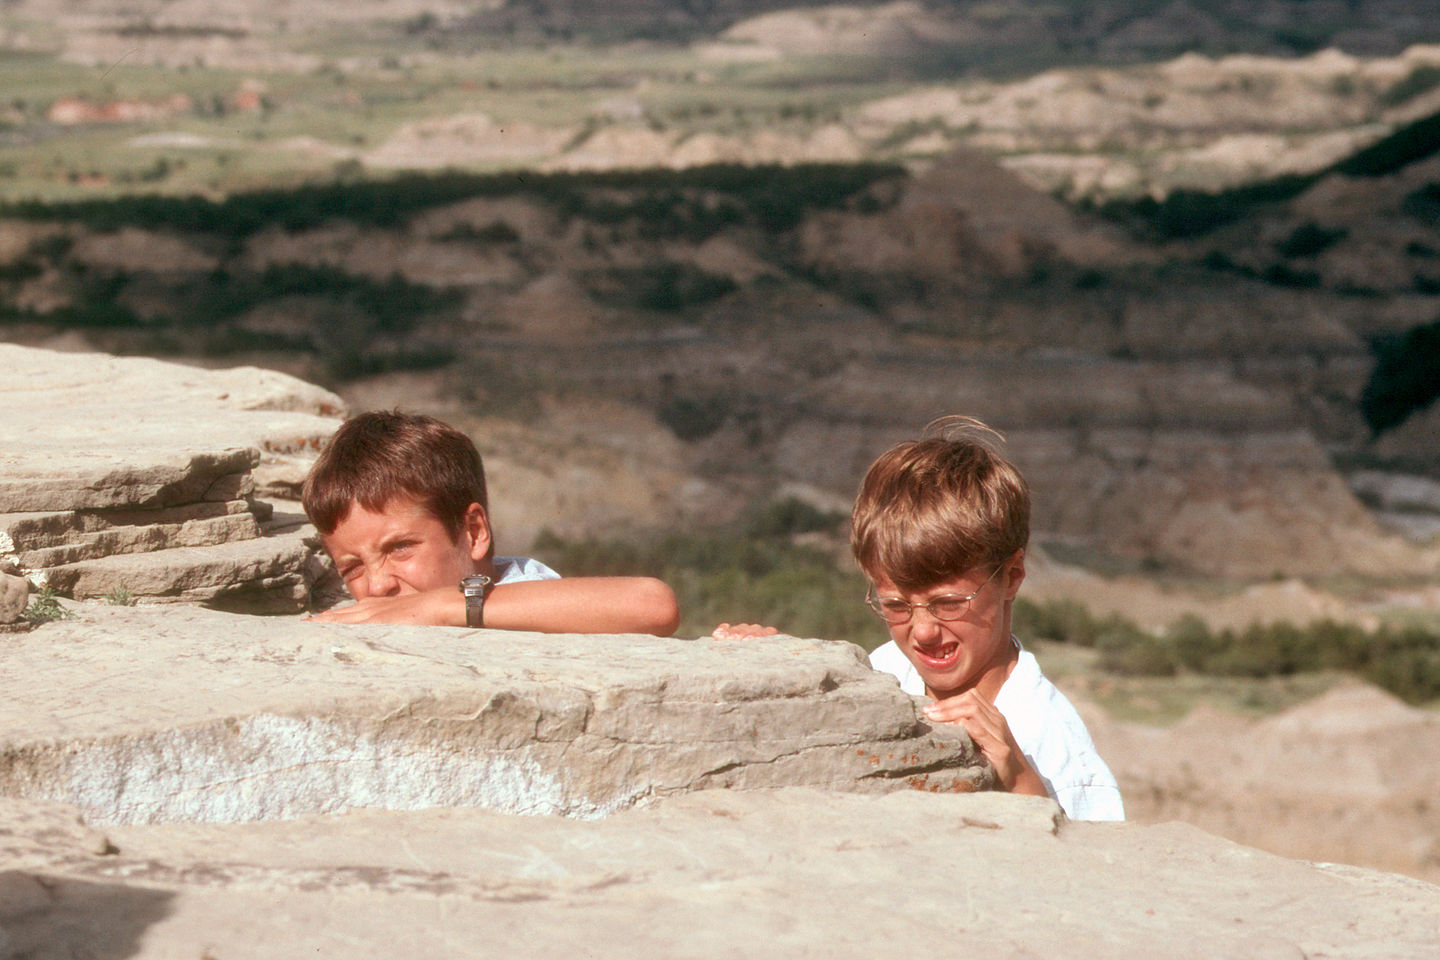 Boys climbing out of painted canyon